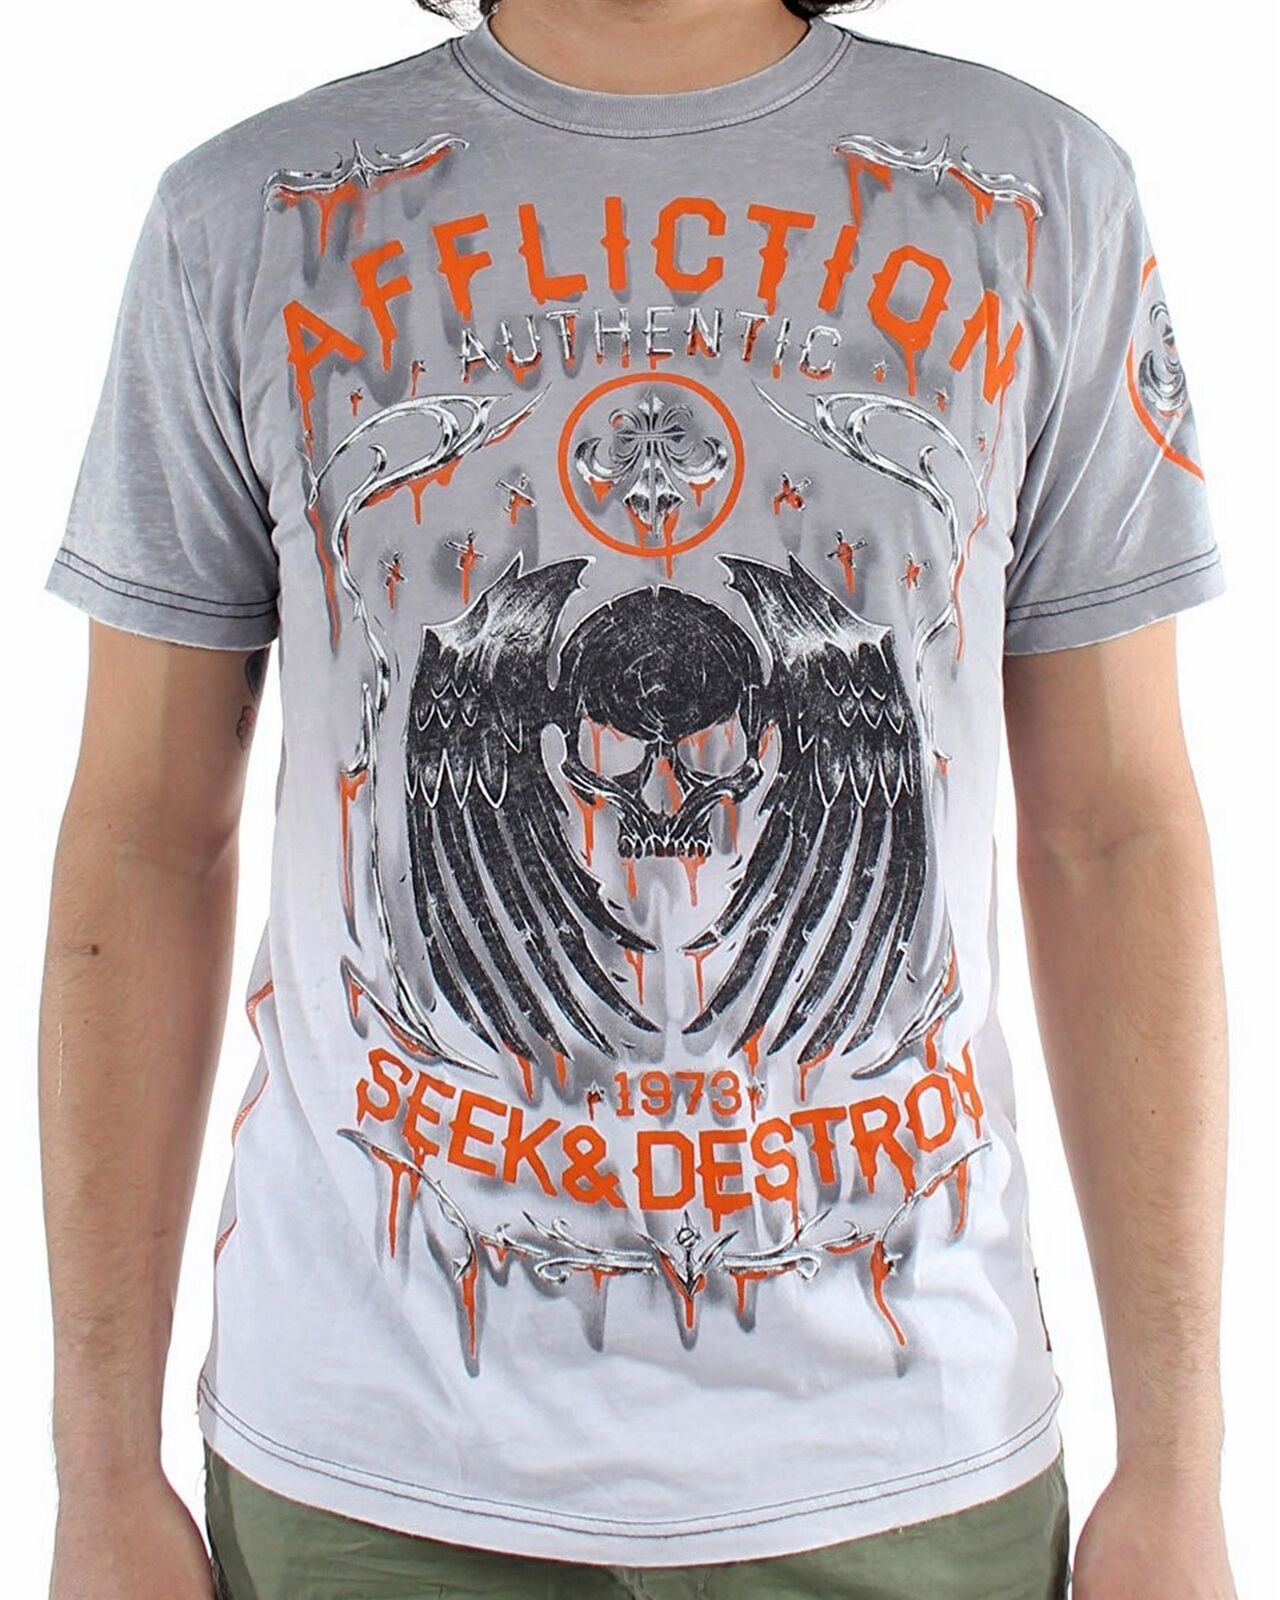 New AFFLICTION Men's Grey Casual Graphic Printed Amount 50 50 S S Crew Tee Shirt